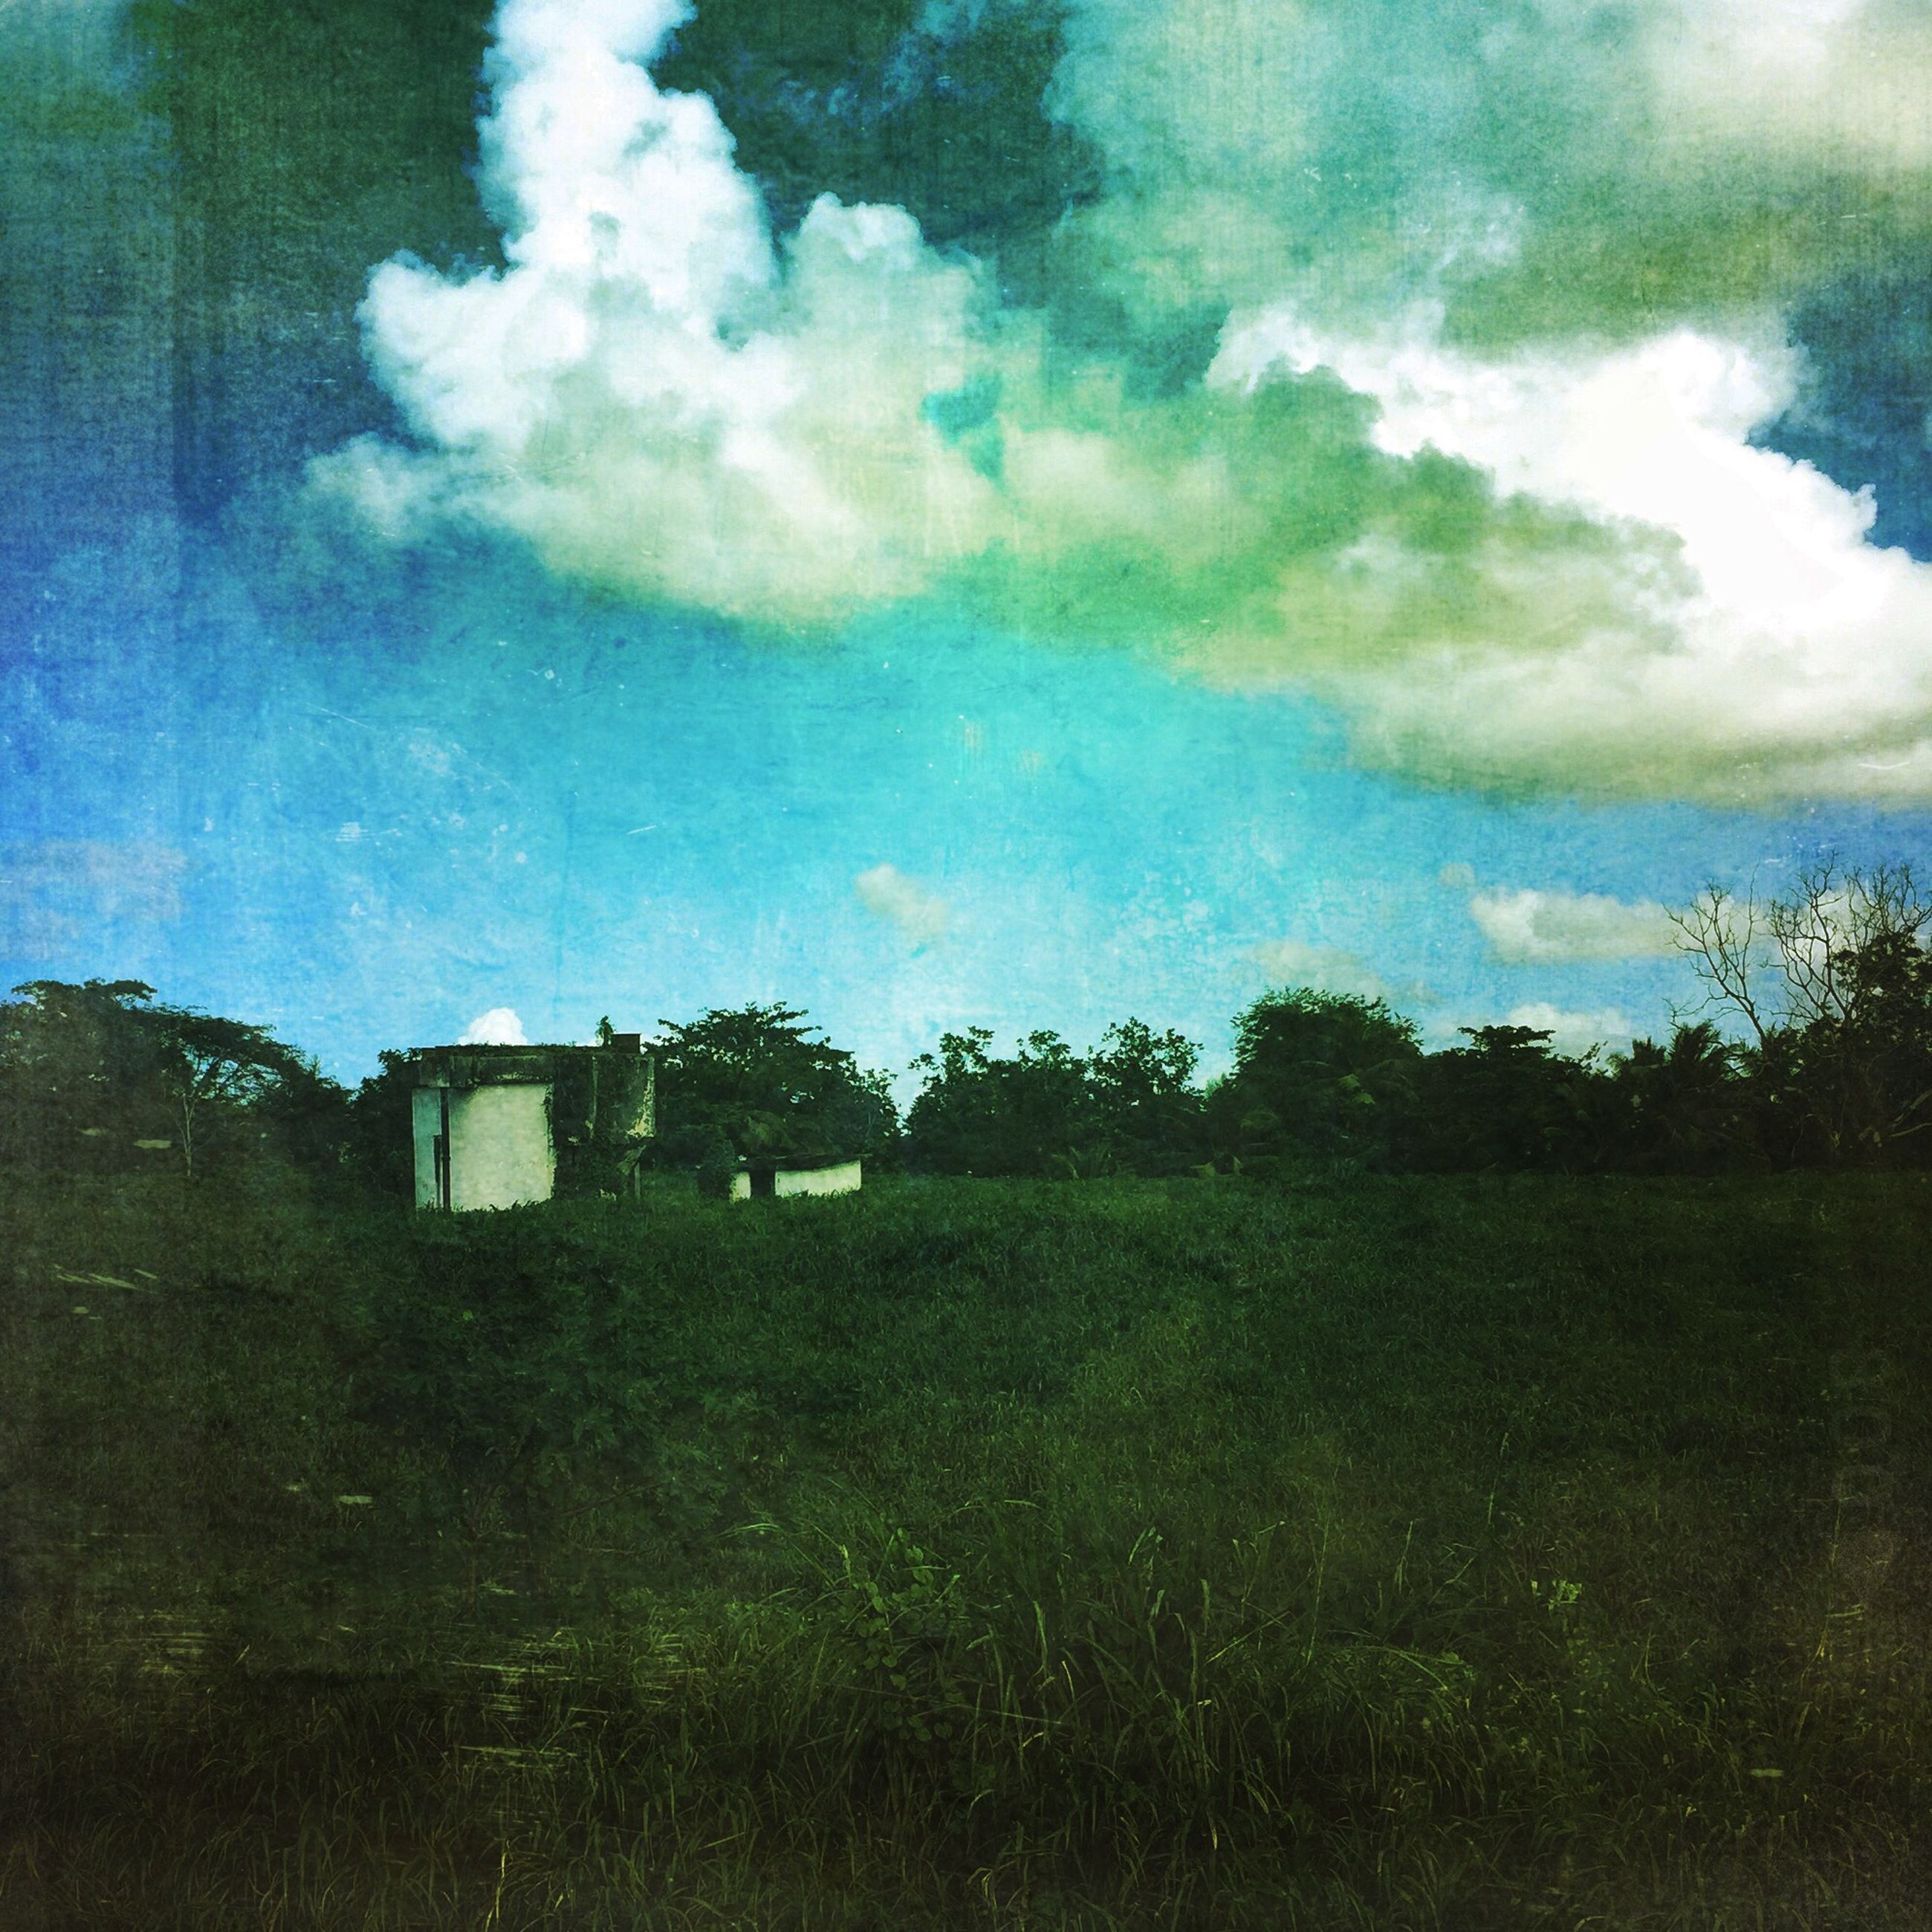 sky, building exterior, built structure, cloud - sky, architecture, field, house, tree, grass, landscape, nature, cloud, grassy, tranquility, growth, cloudy, tranquil scene, beauty in nature, blue, green color